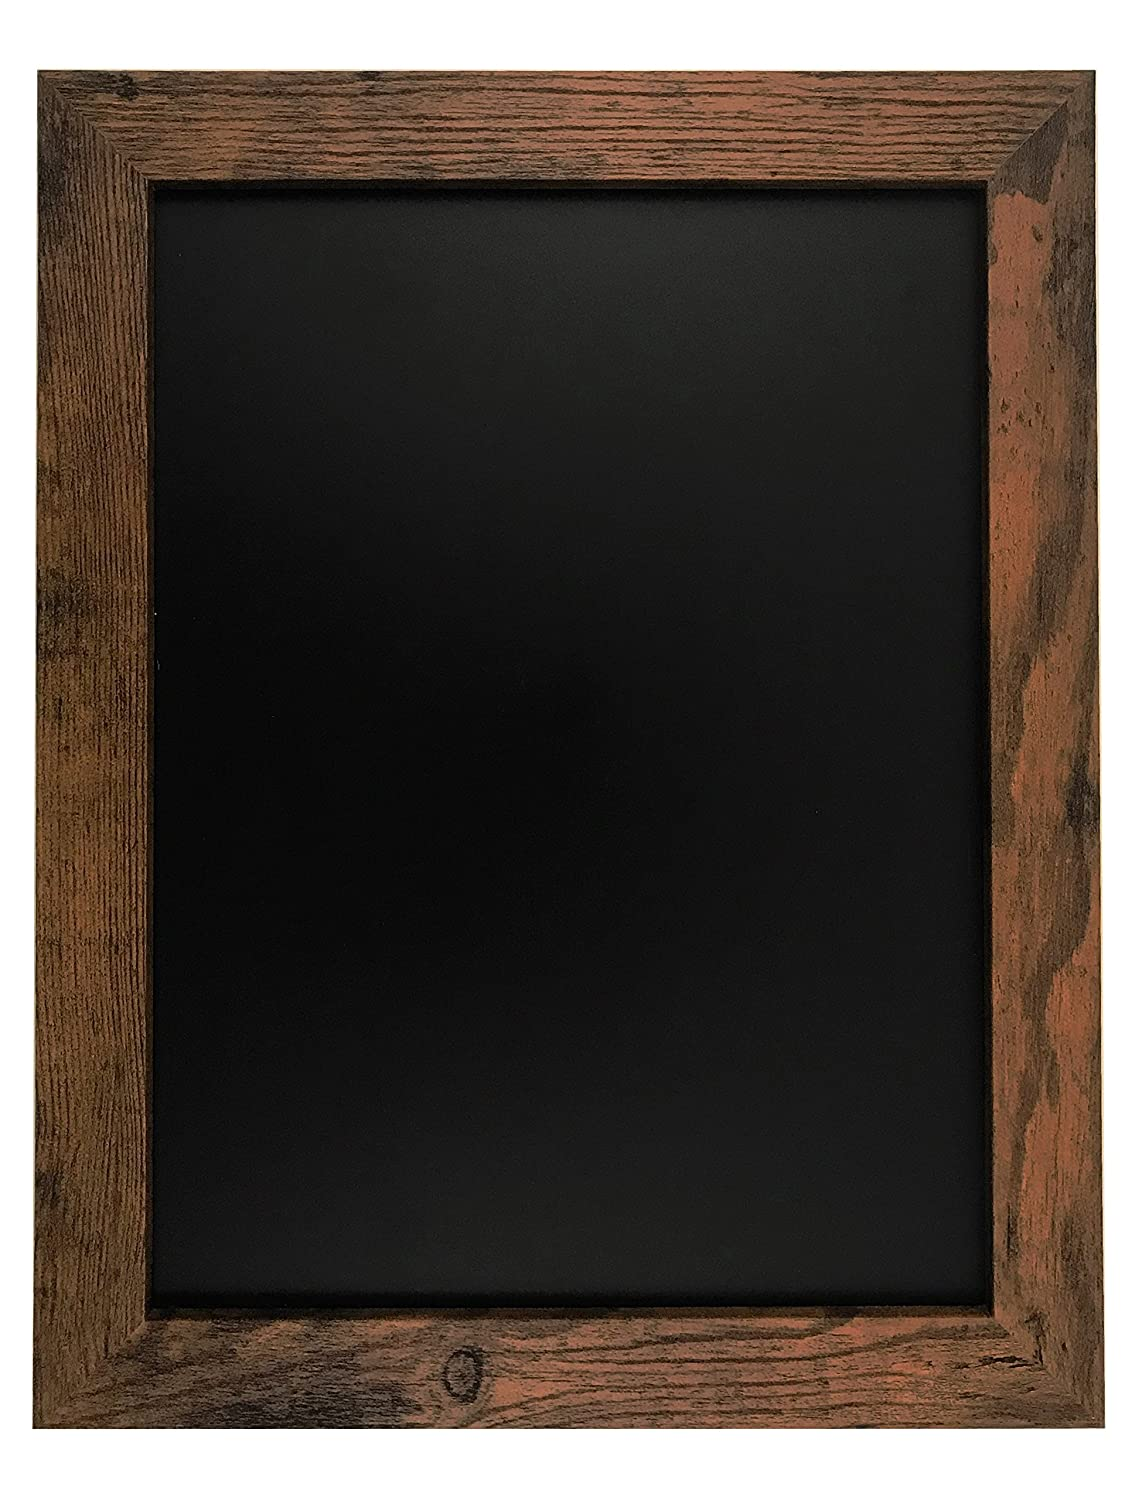 Rustic Wood Premium Surface Magnetic Chalk Board- 11x14 Perfect for Chalk Markers and Home Decor Loddie Doddie 58002